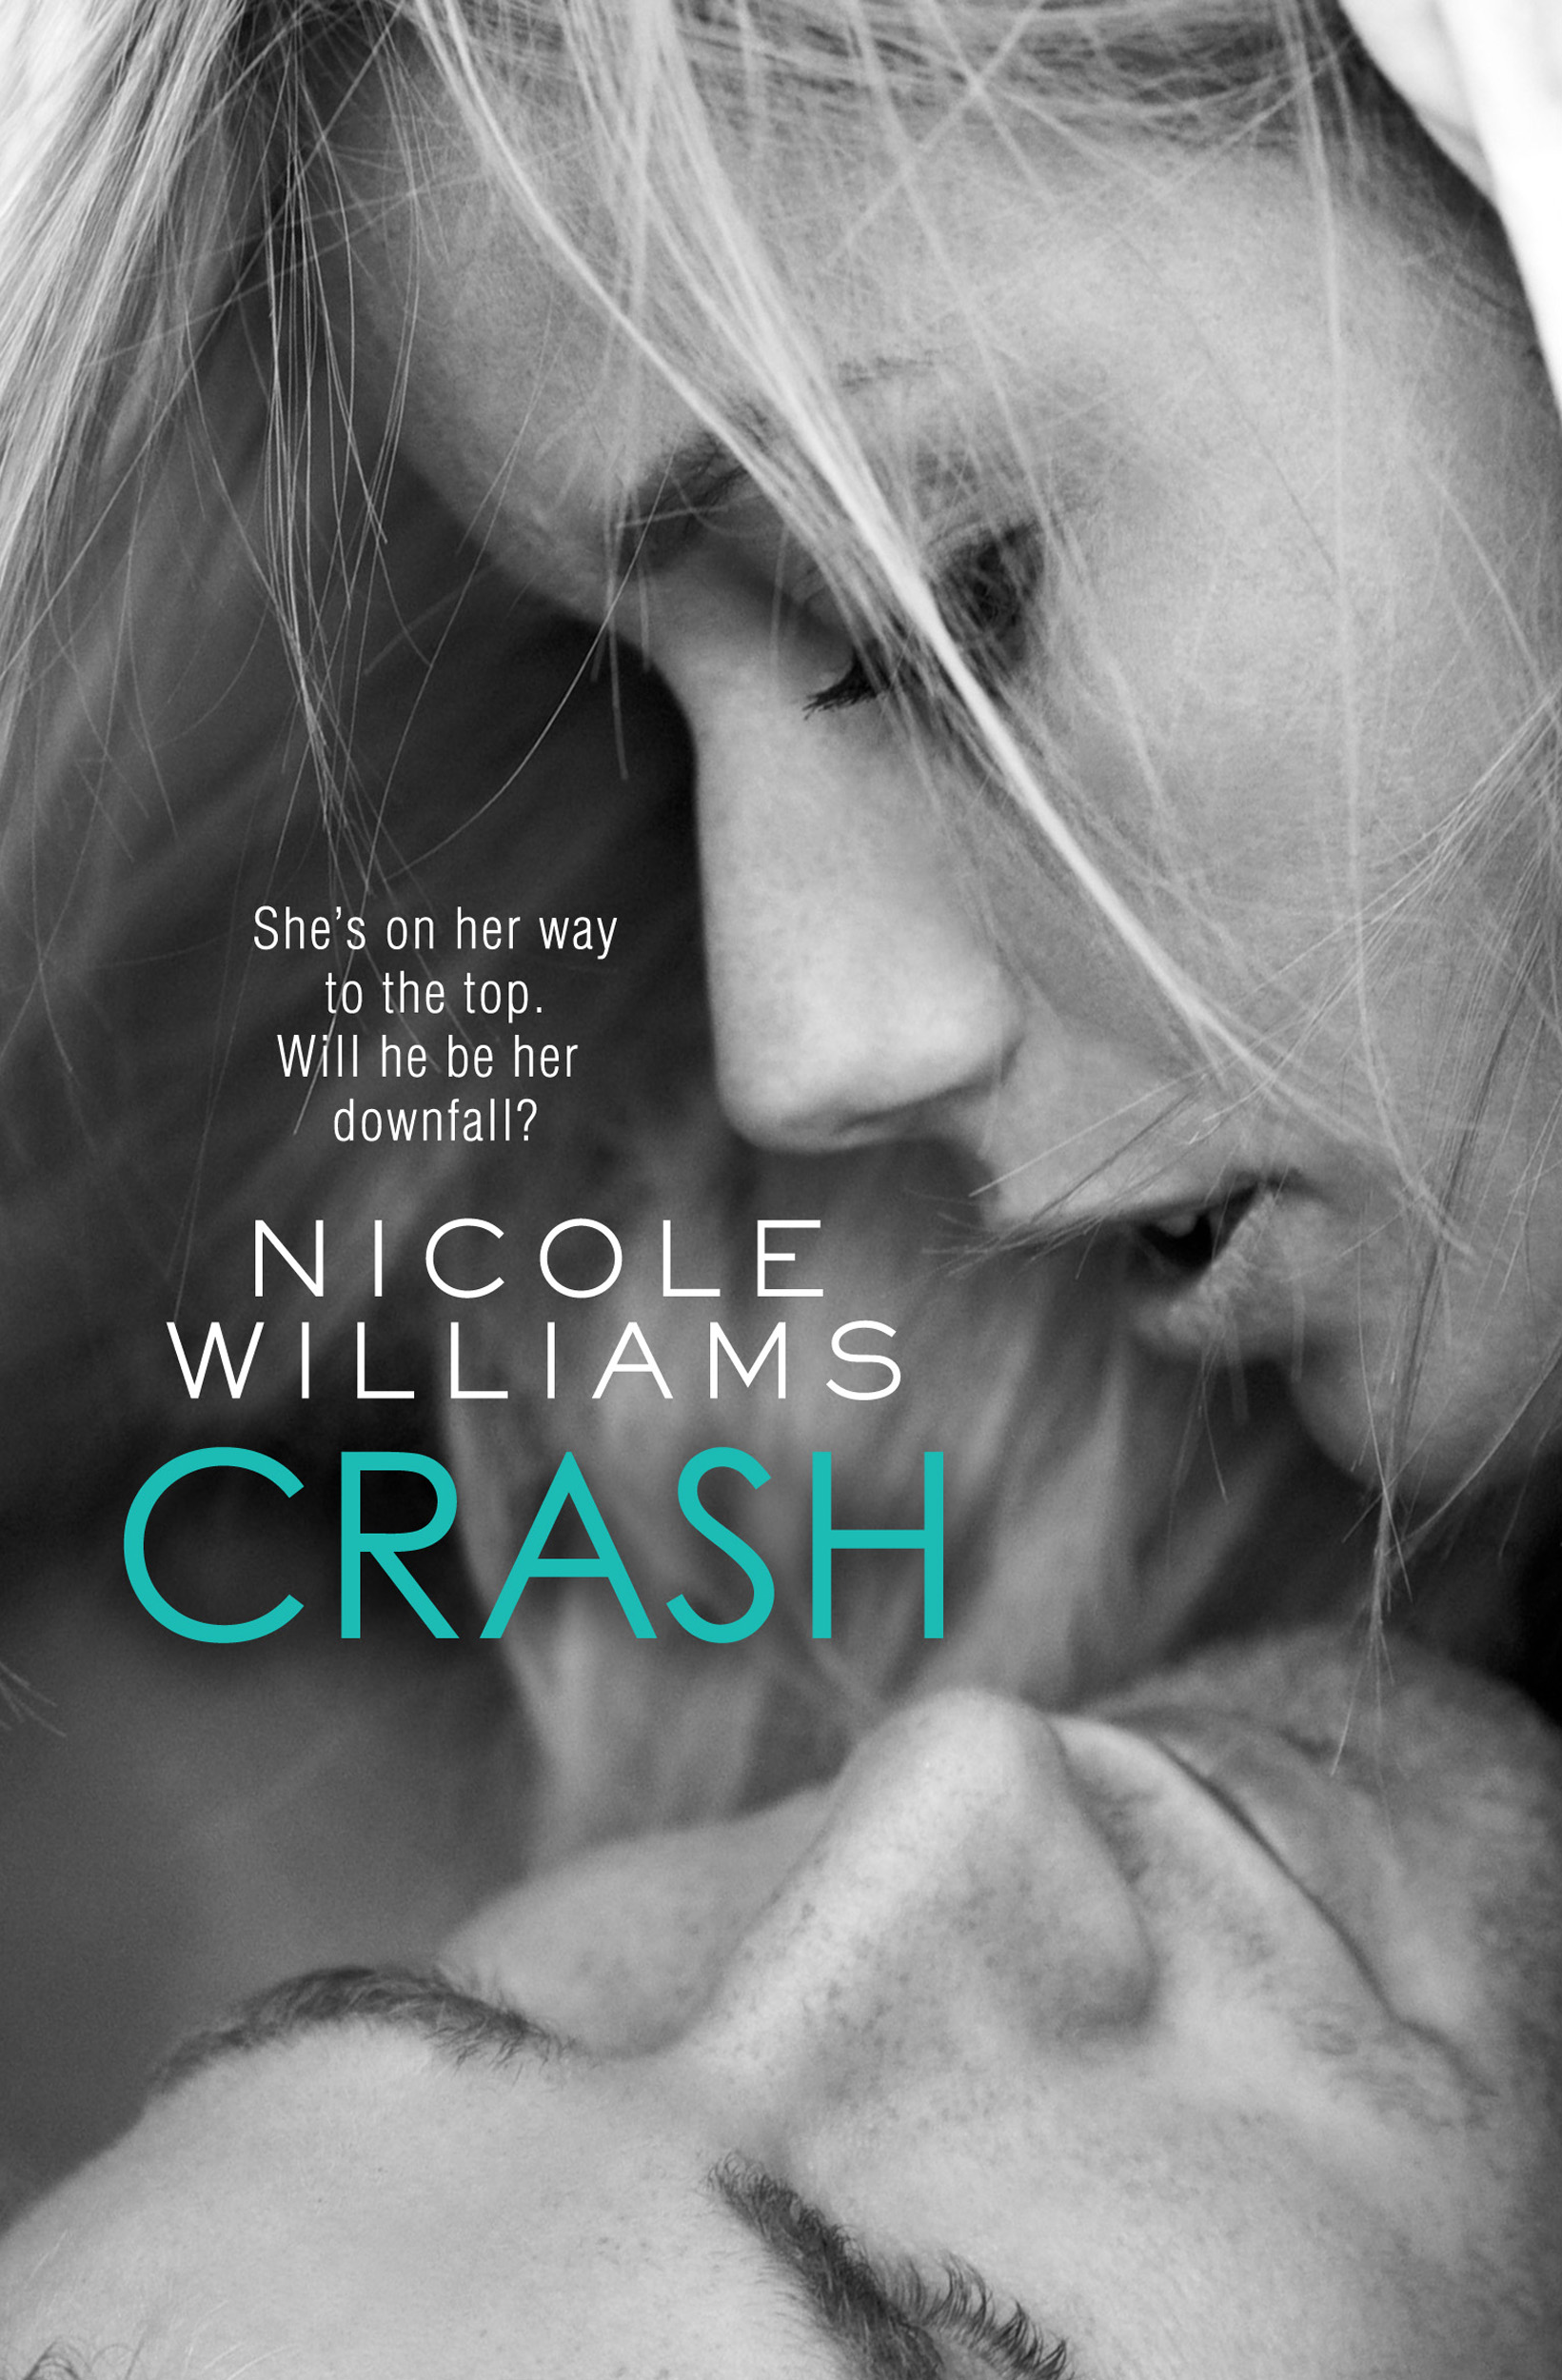 Crash Libro Trilogia Crash Nicole Williams